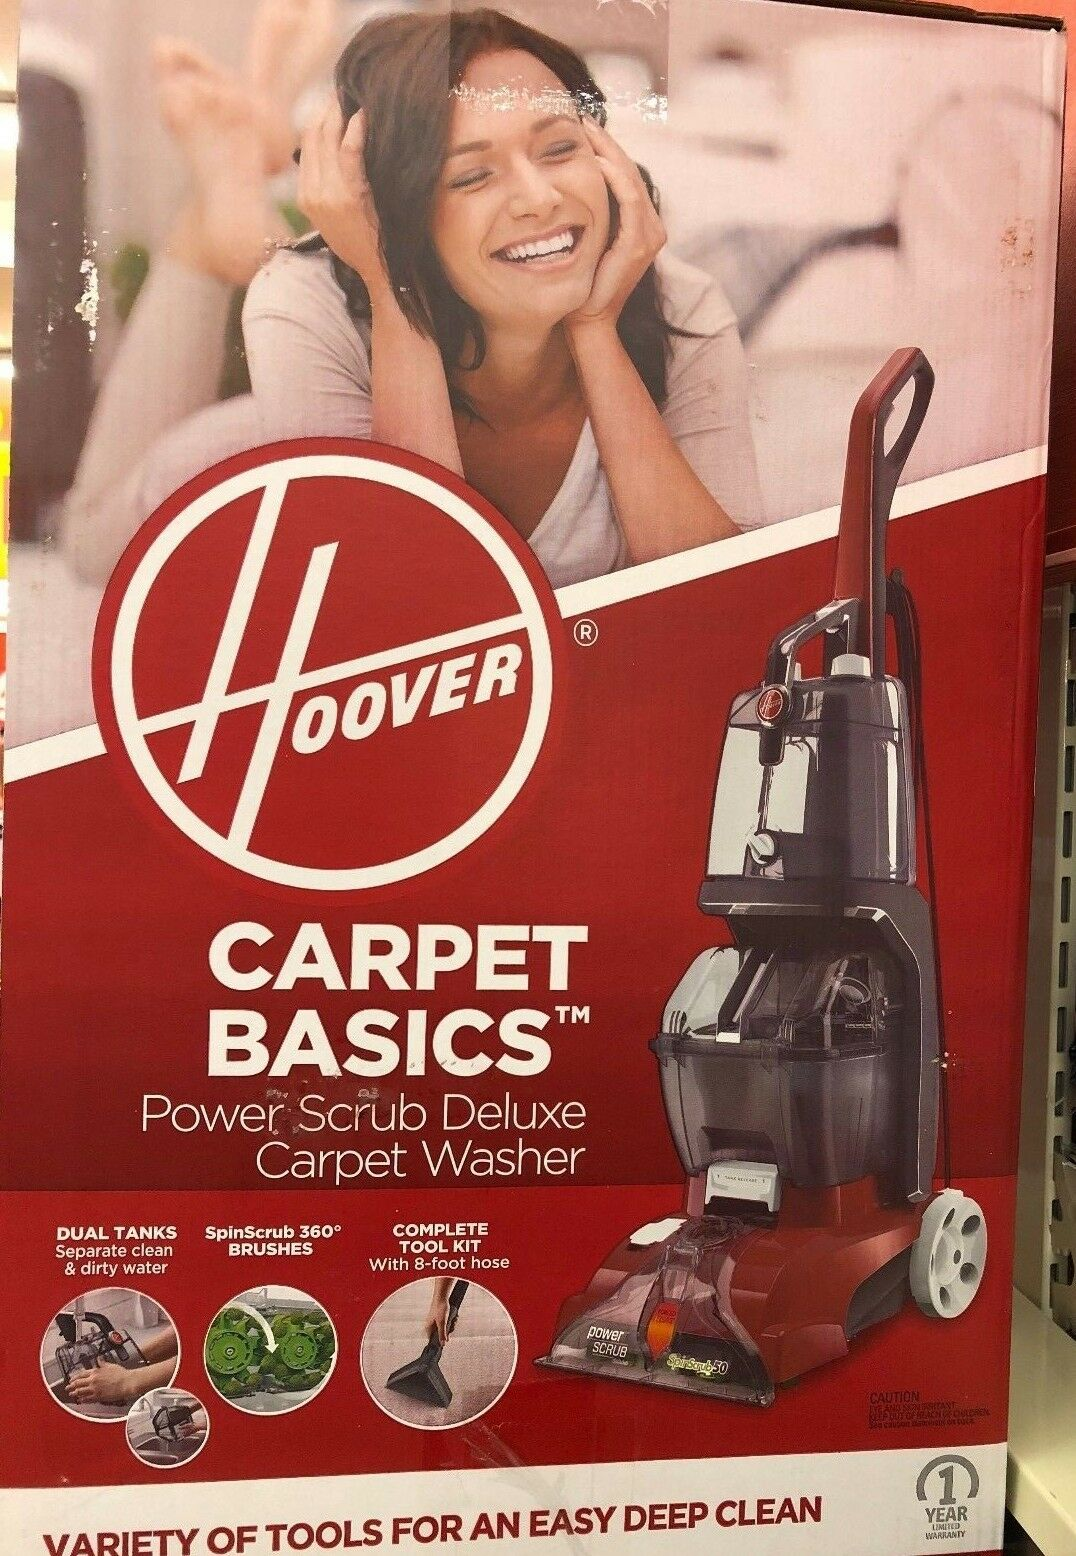 Hoover Power Scrub Deluxe Carpet Washer FH50150